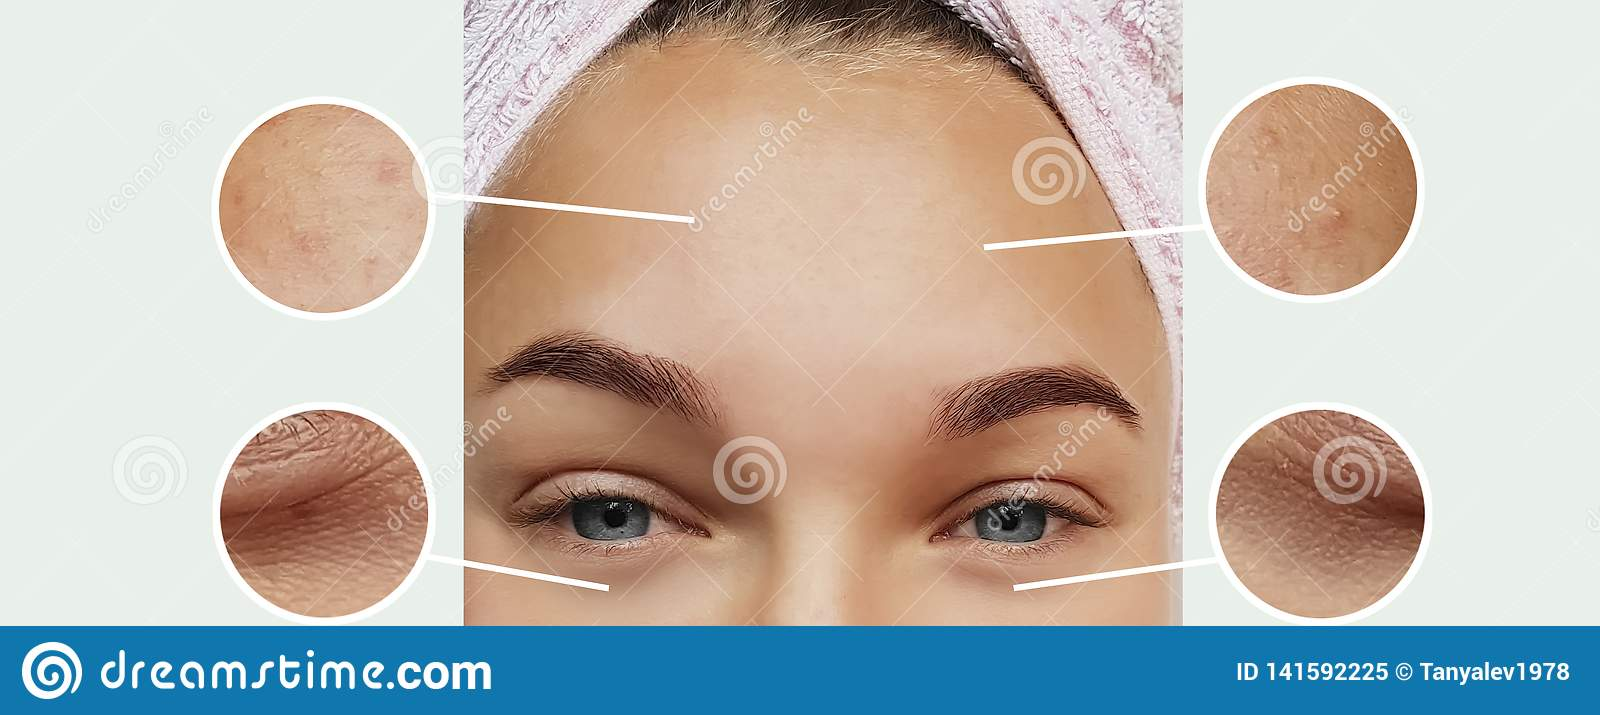 Woman eyes wrinkles bloating dermatology correction therapy concept contrast before and after collage